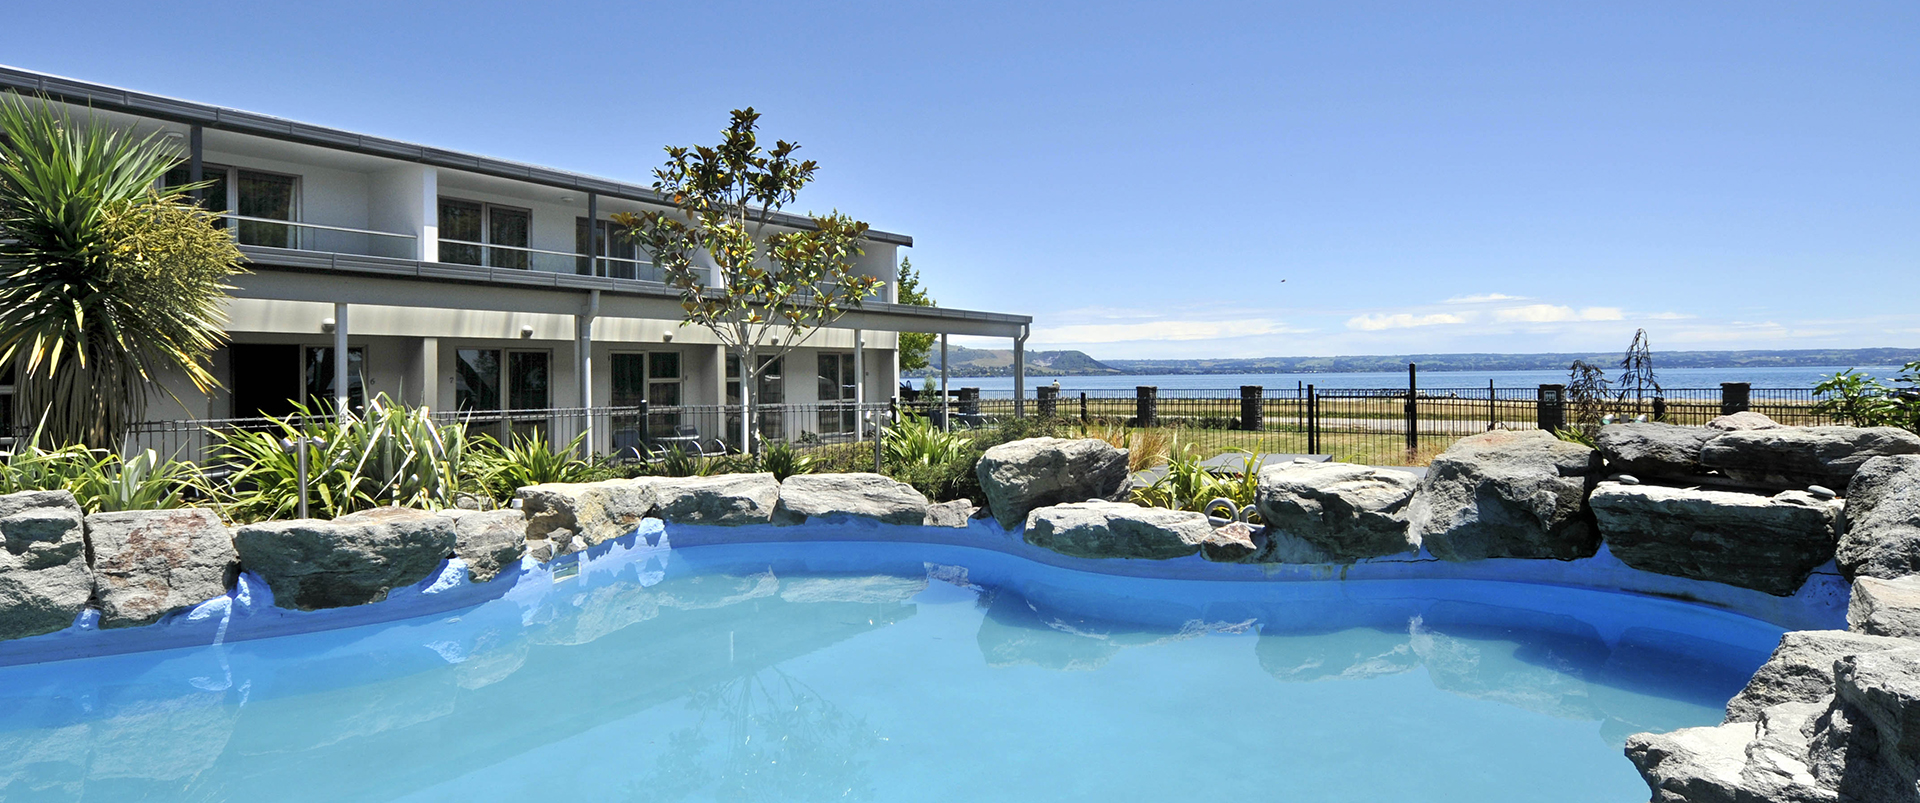 Lakeside Rotorua Accommodation